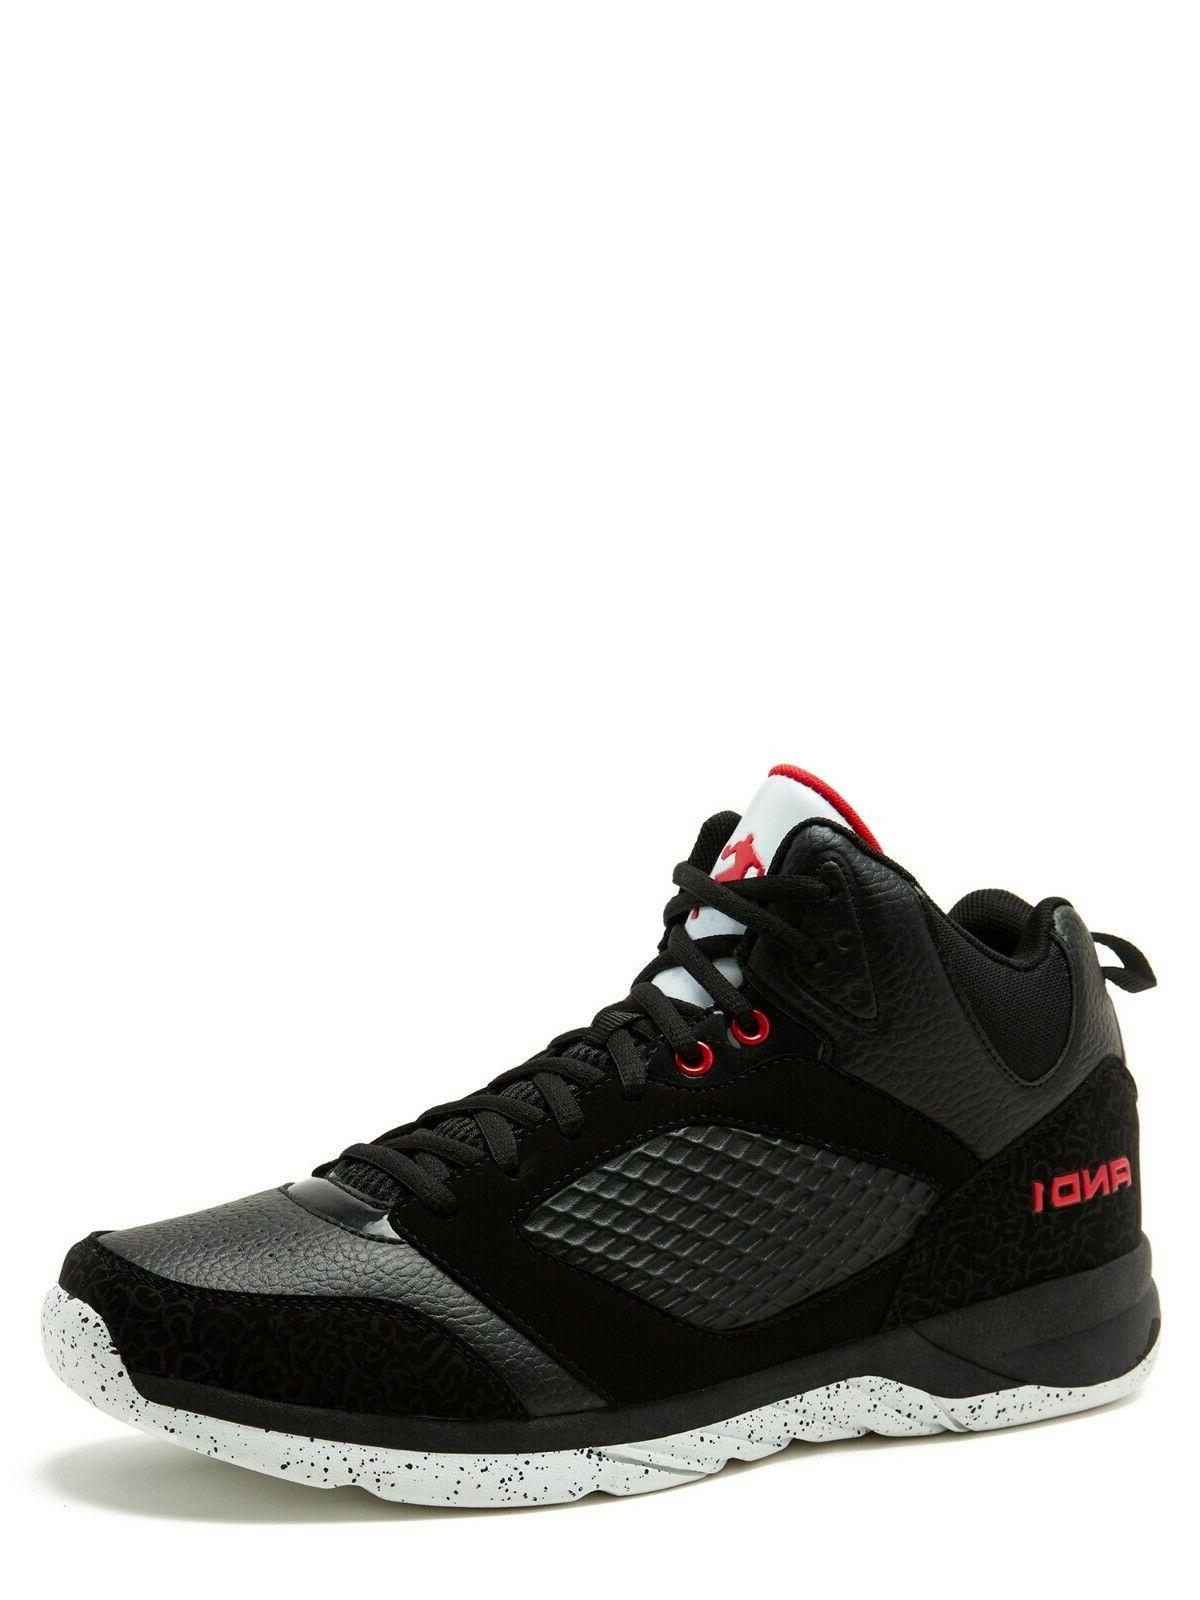 AND1 Capital Athletic Basketball NWT